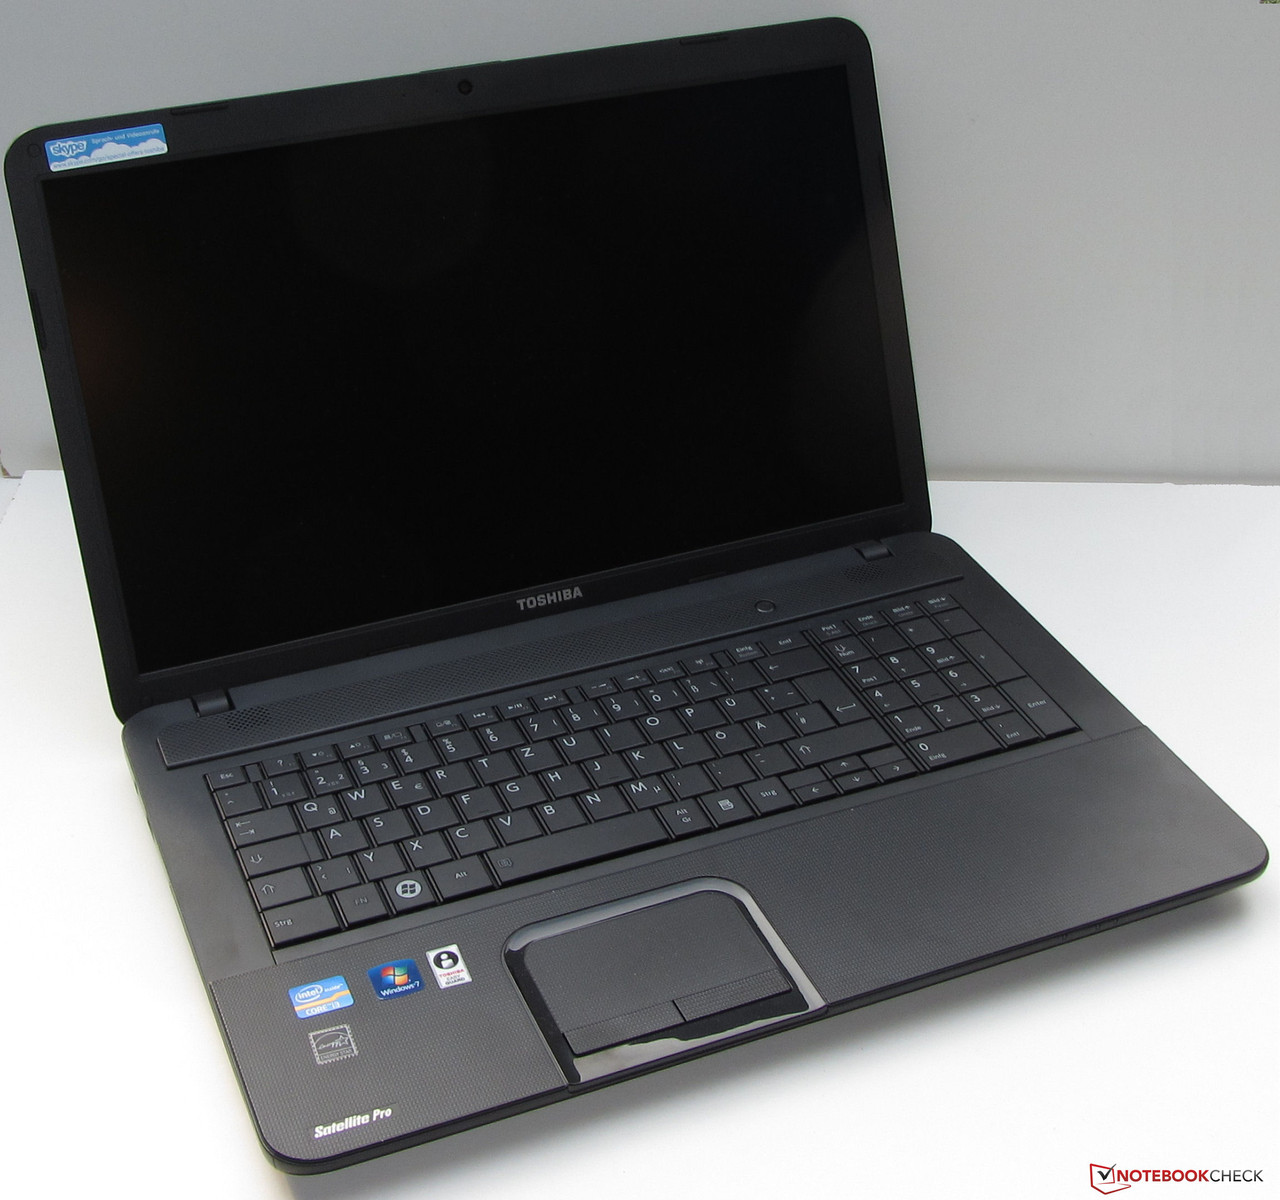 Driver: Toshiba Satellite Pro L870 Webcam